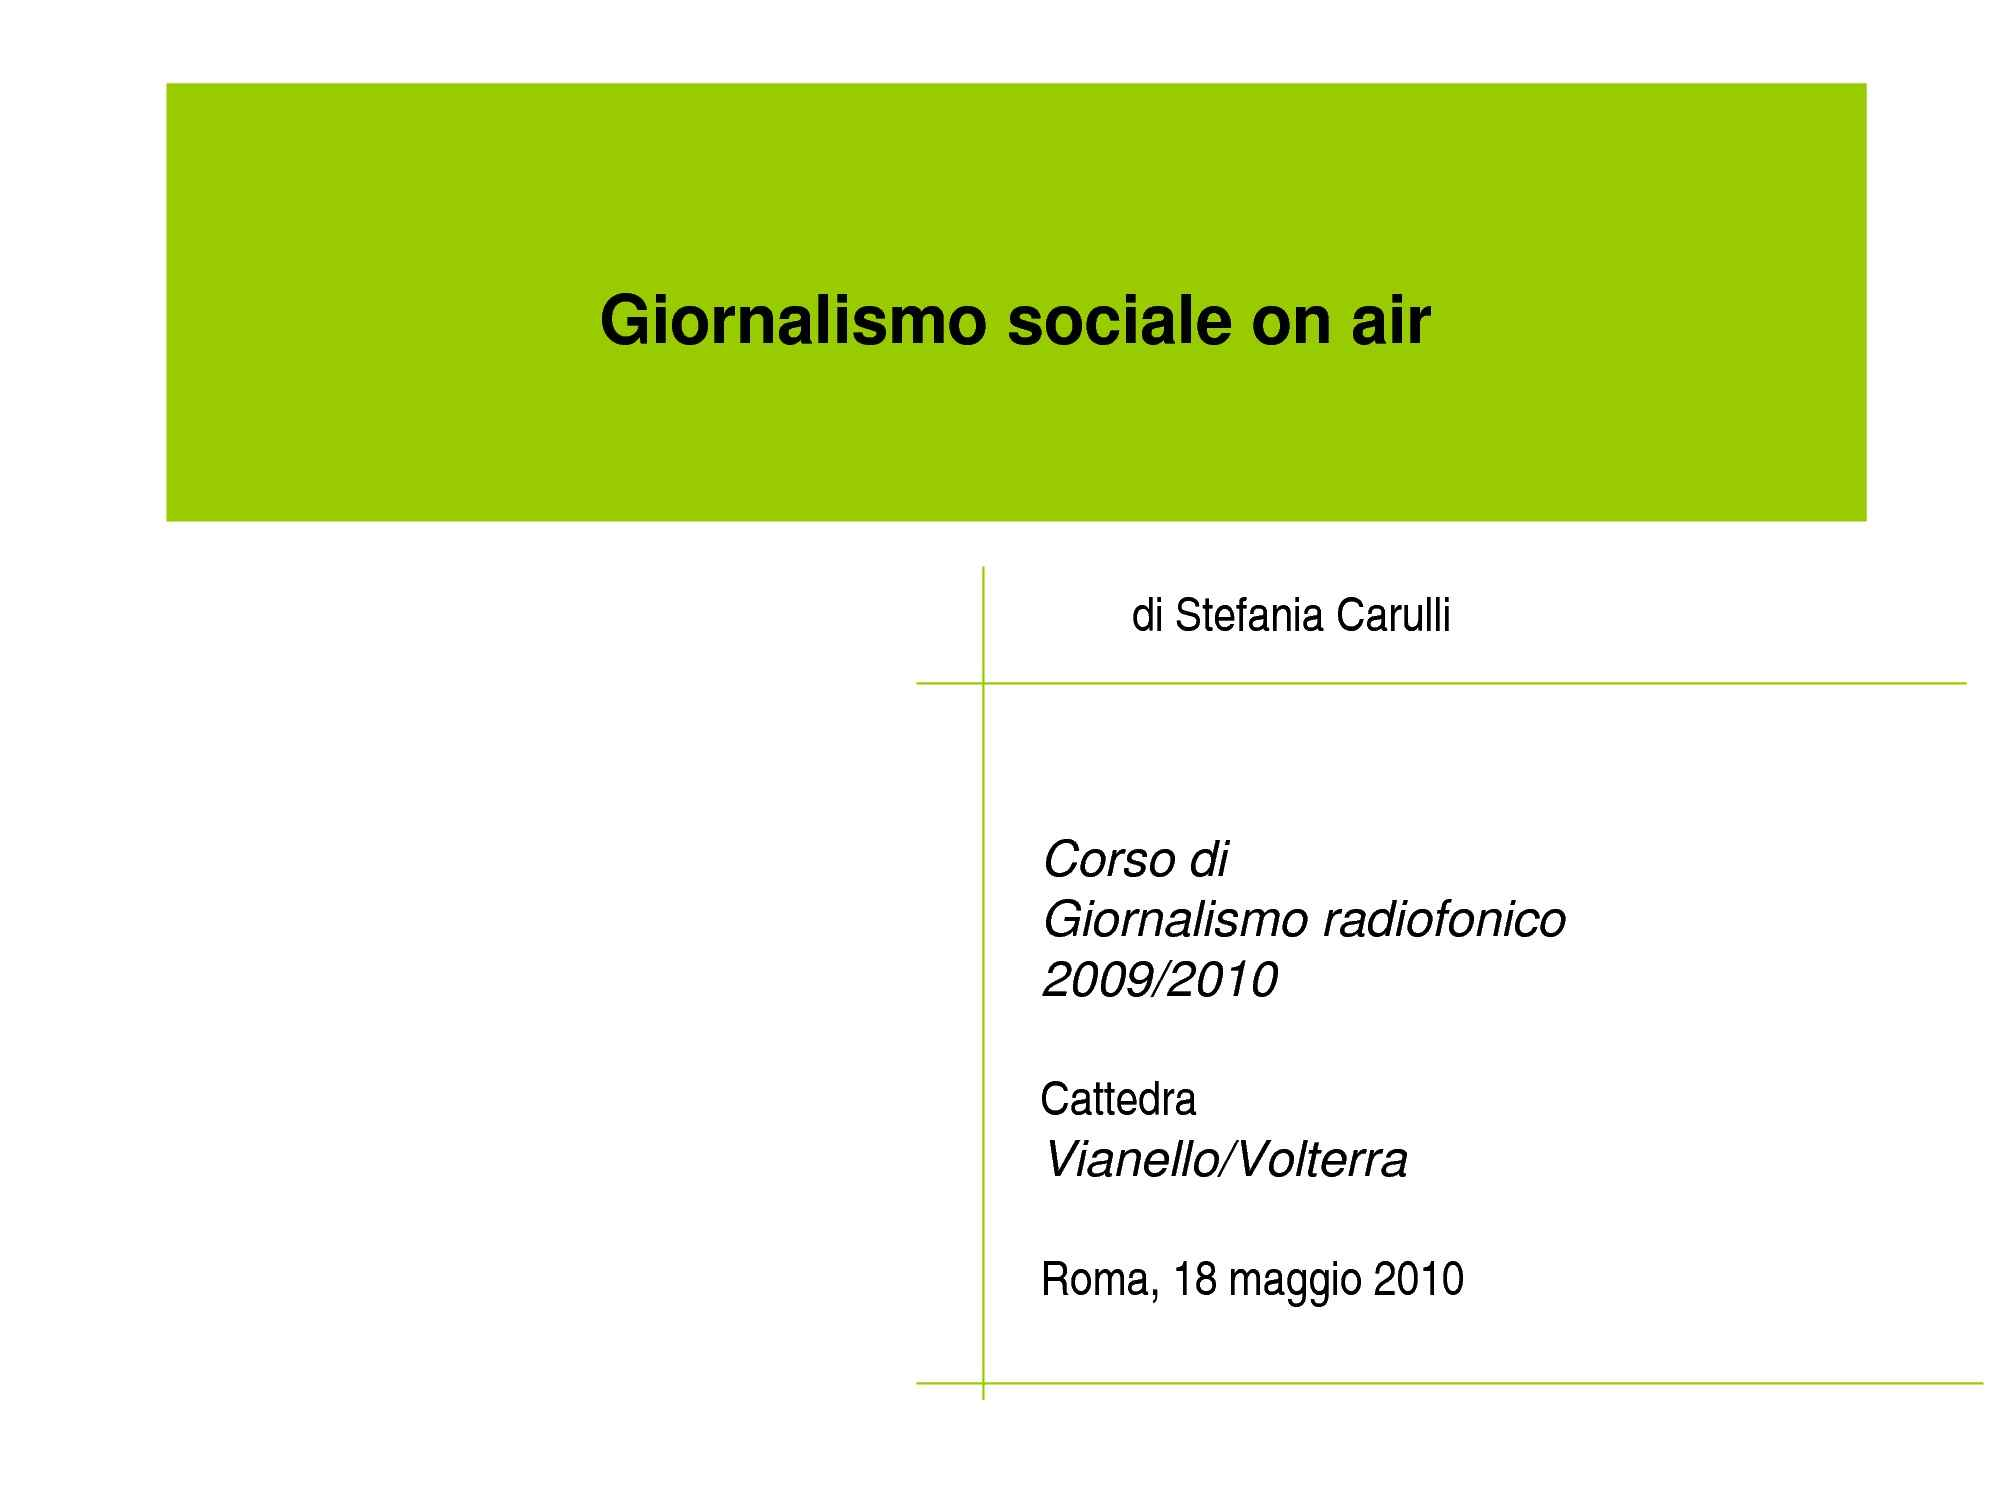 Giornalismo Sociale On Air